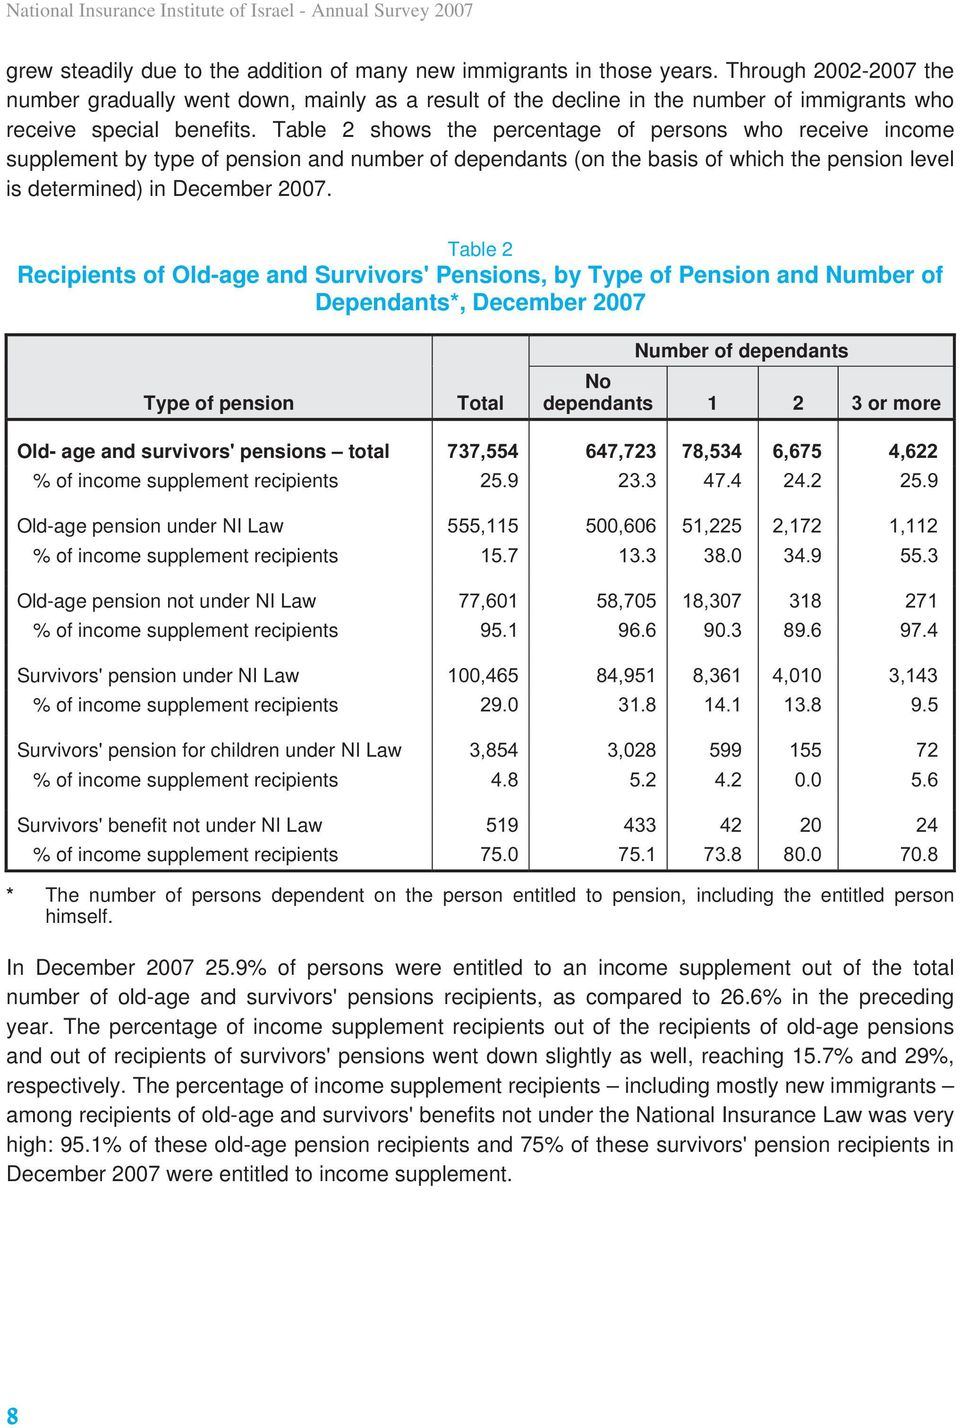 Table 2 shows the percentage of persons who receive income supplement by type of pension and number of dependants (on the basis of which the pension level is determined) in December 2007.